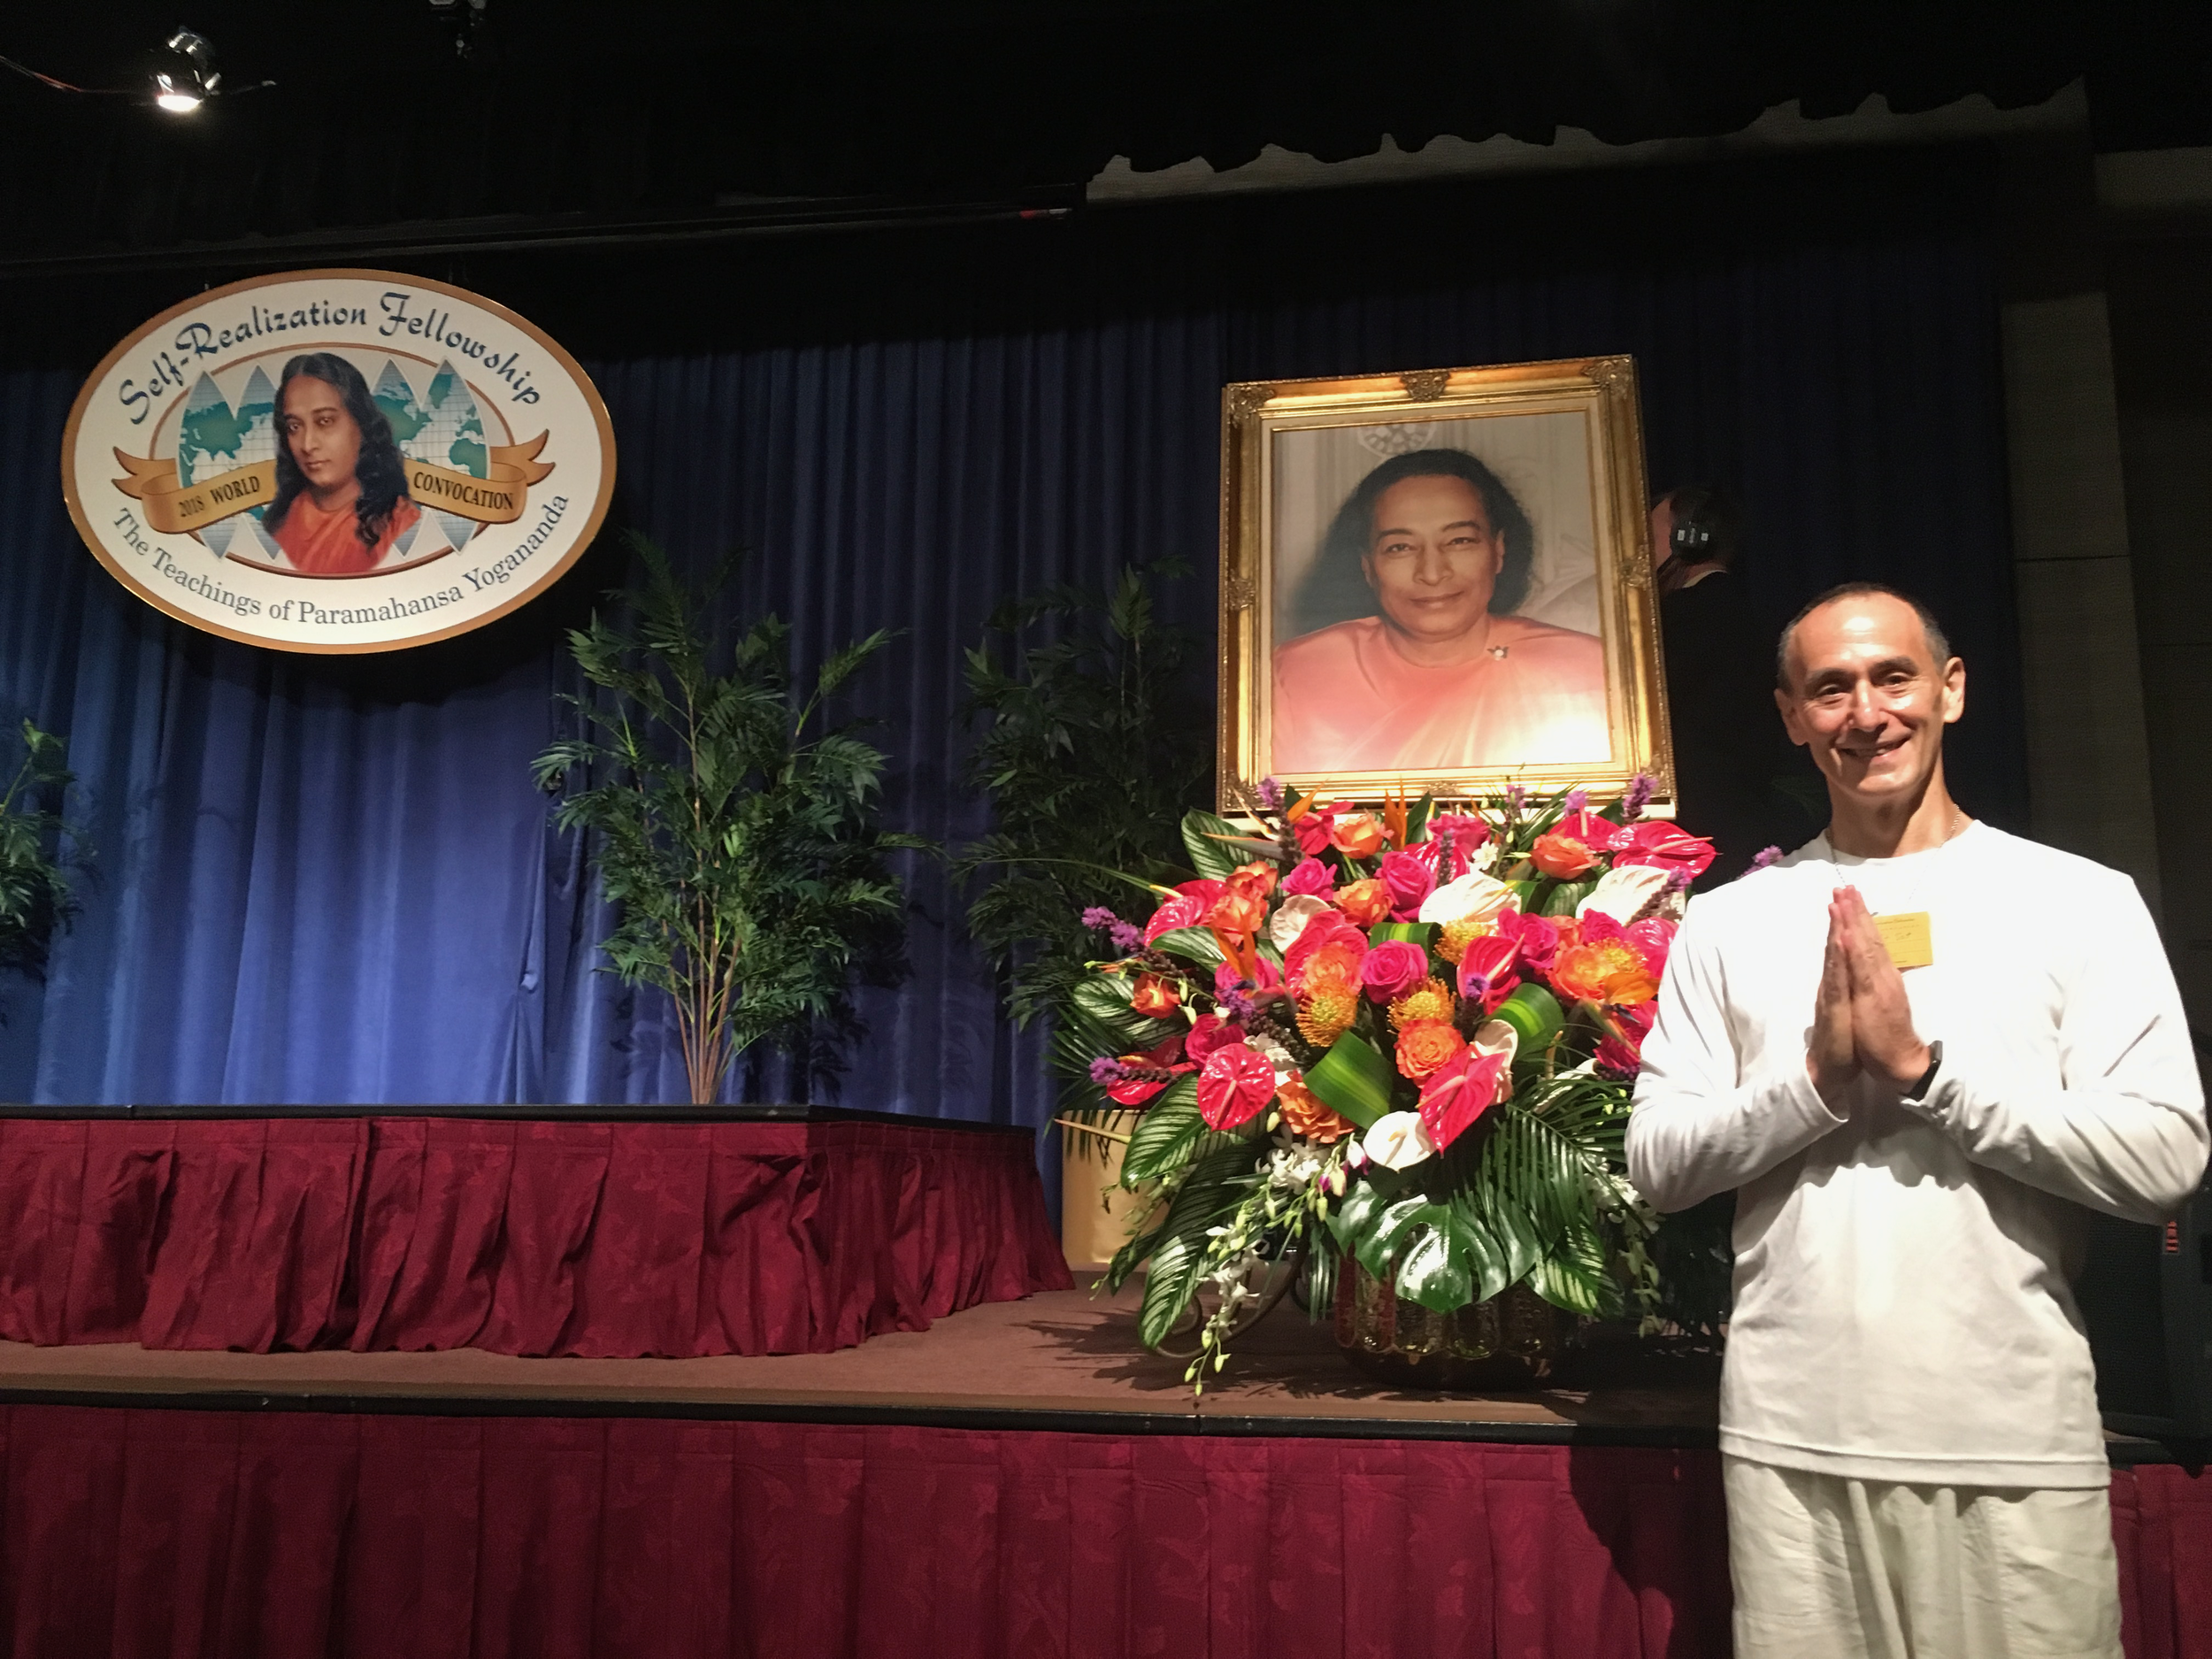 Kriya Yoga - I am a student of the Self-Realization Fellowship teachings of Paramahansa Yogananda and received the Kriya Yoga initiation during the 2018 Self-Realization Fellowship Convocation.